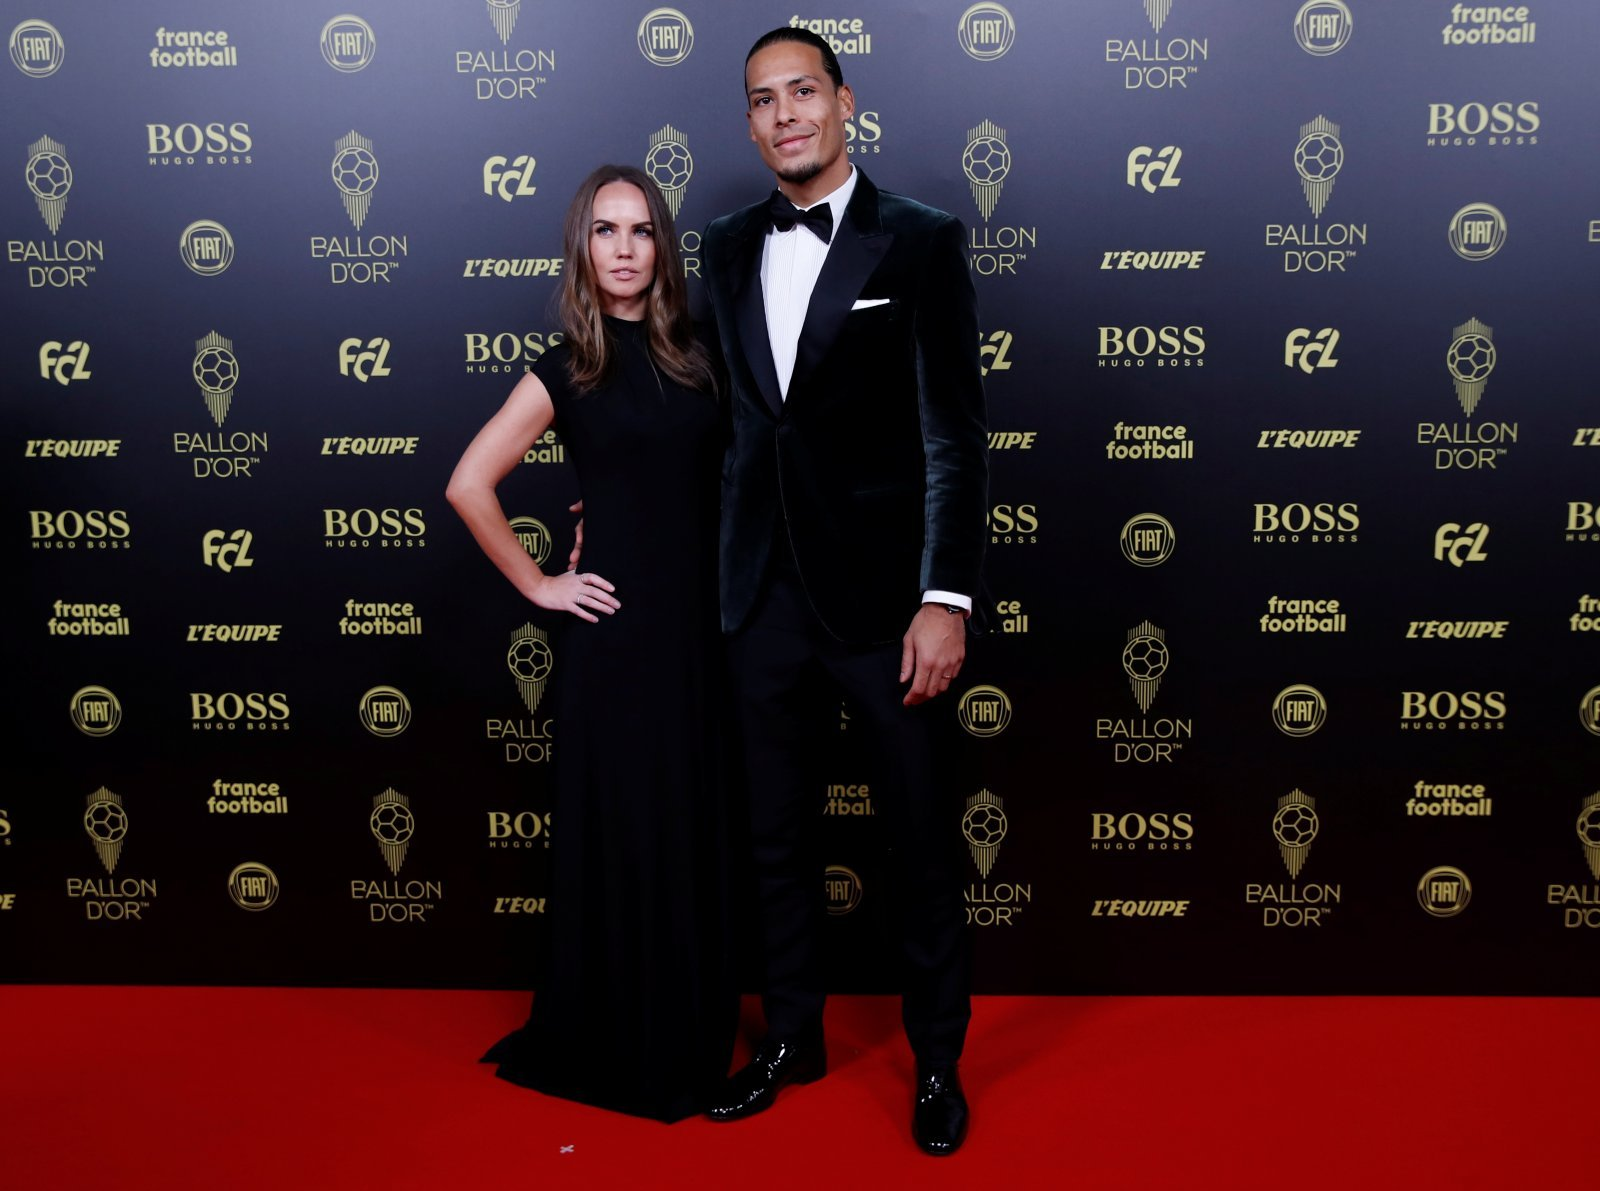 Liverpool: Fans feel Virgil van Dijk was robbed of Ballon d'Or award